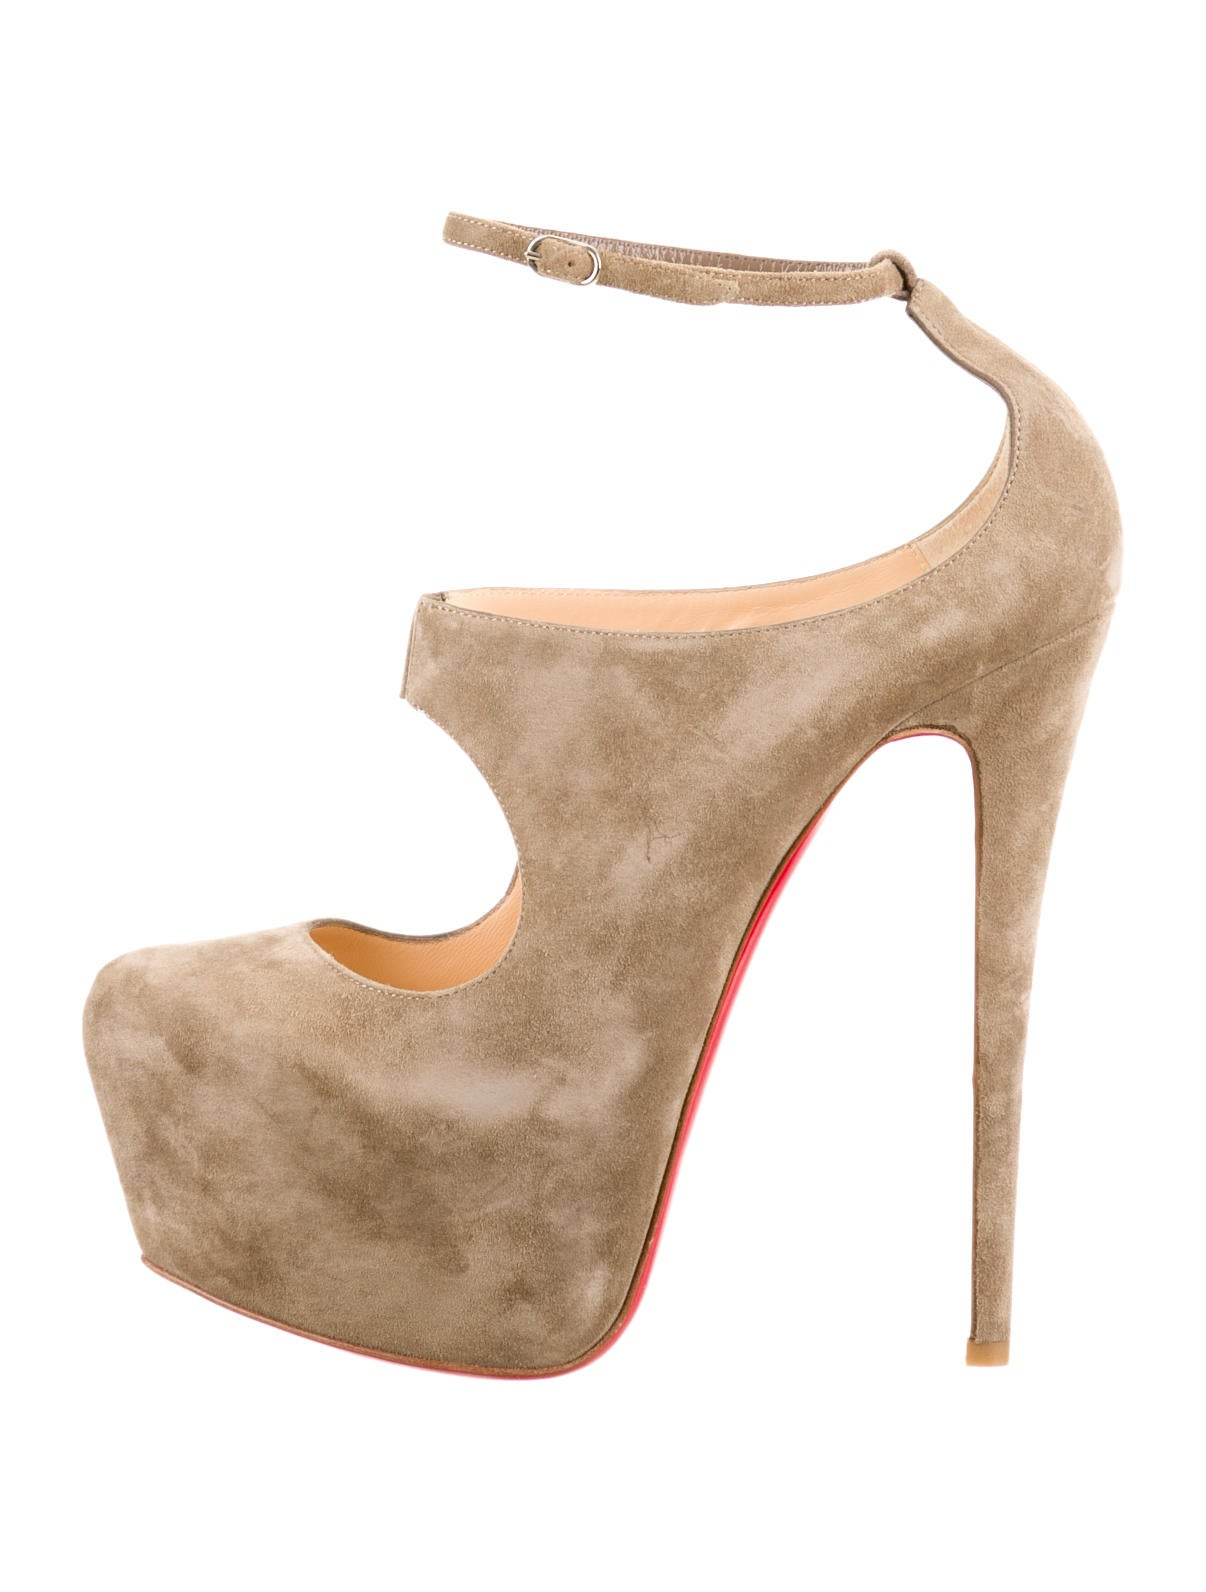 christian louboutin pointed-toe booties Taupe suede | The Little ...